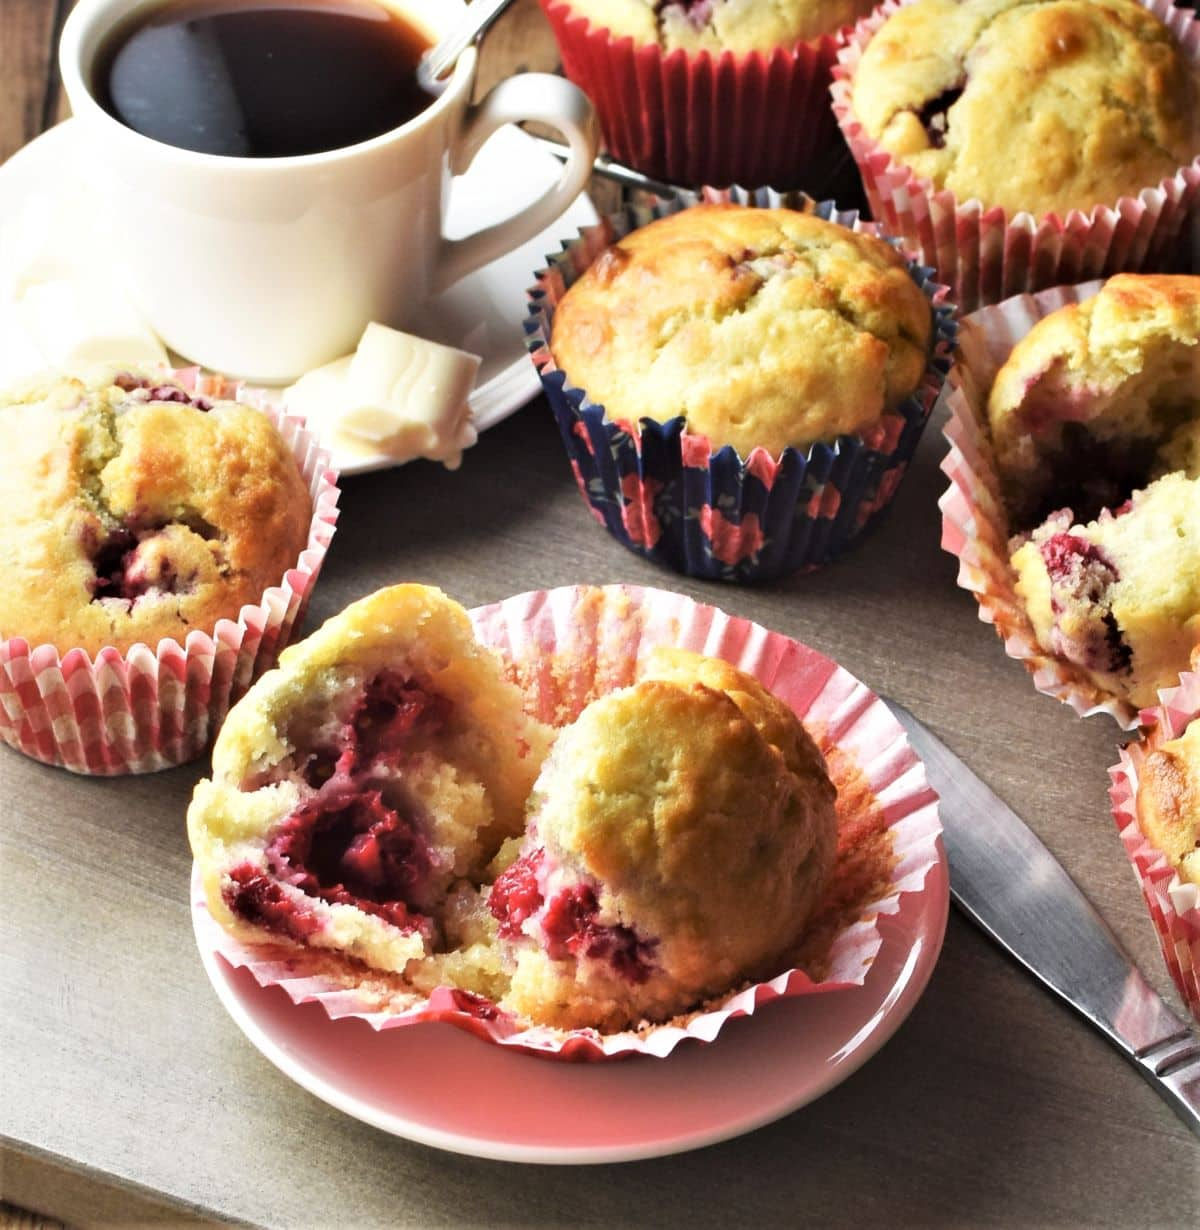 Side view of raspberry muffins in paper cases and coffee in background.